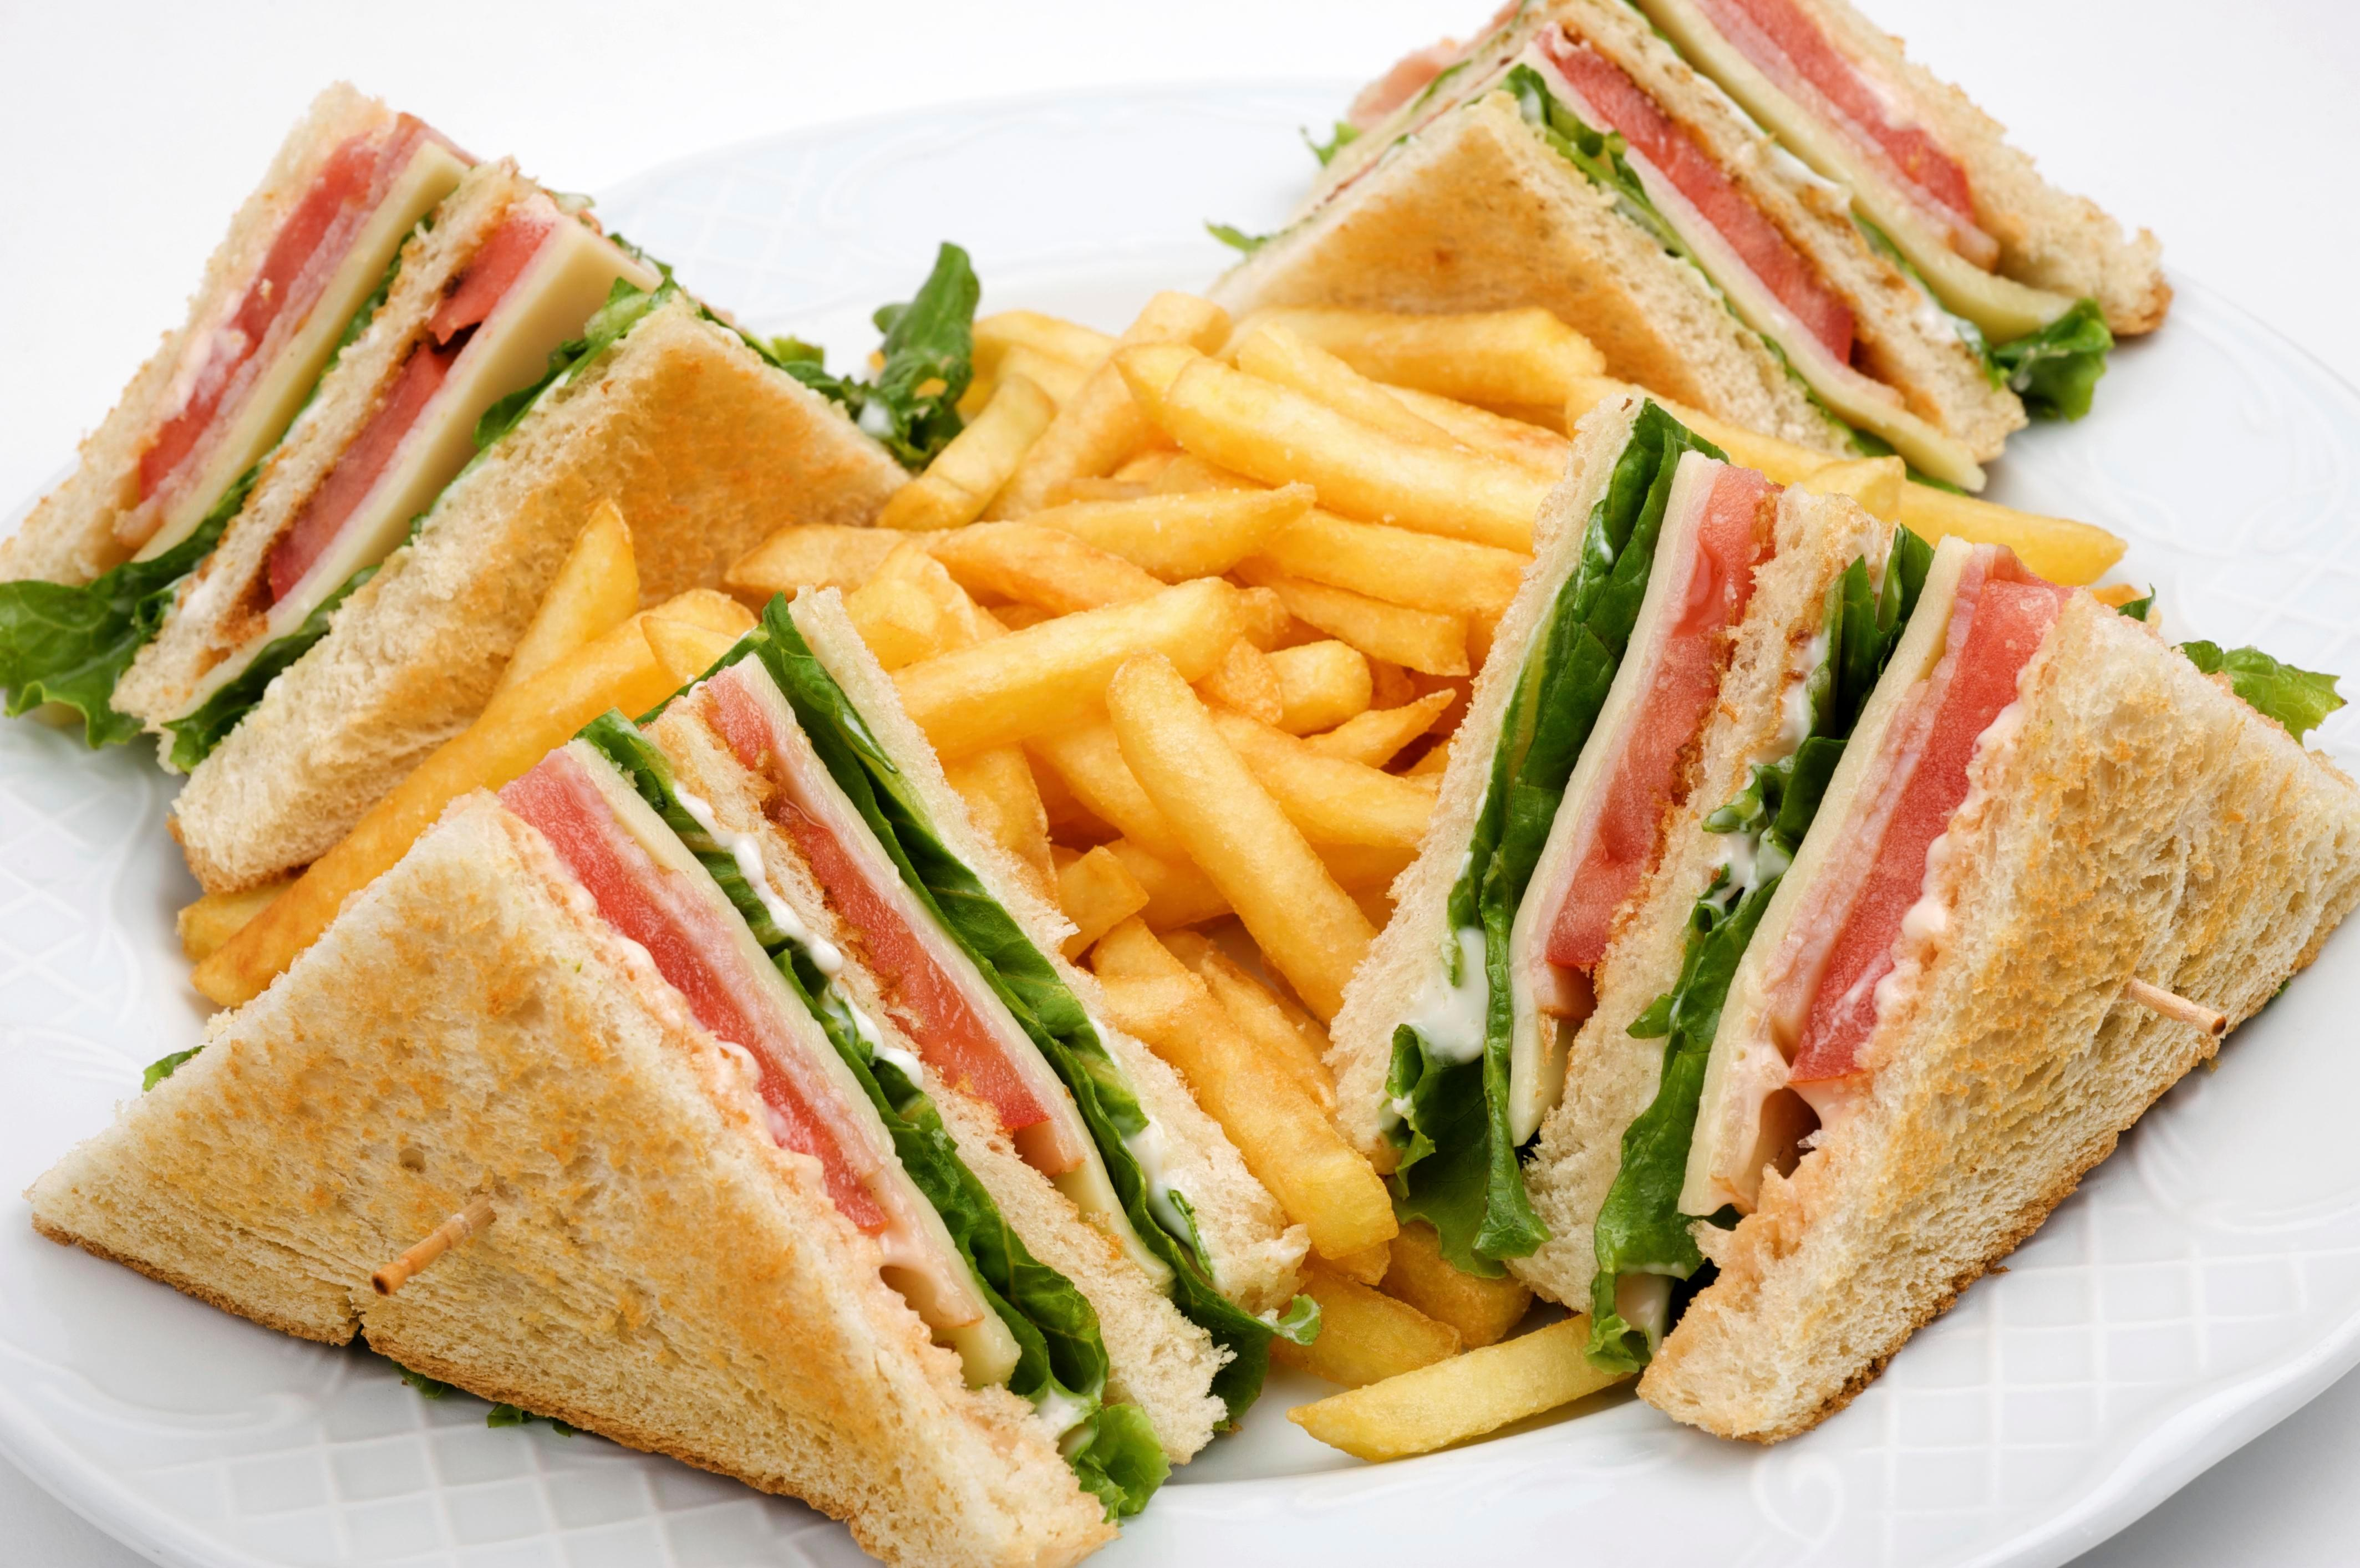 Club sandwich name actually stands for something – and we can't get over it